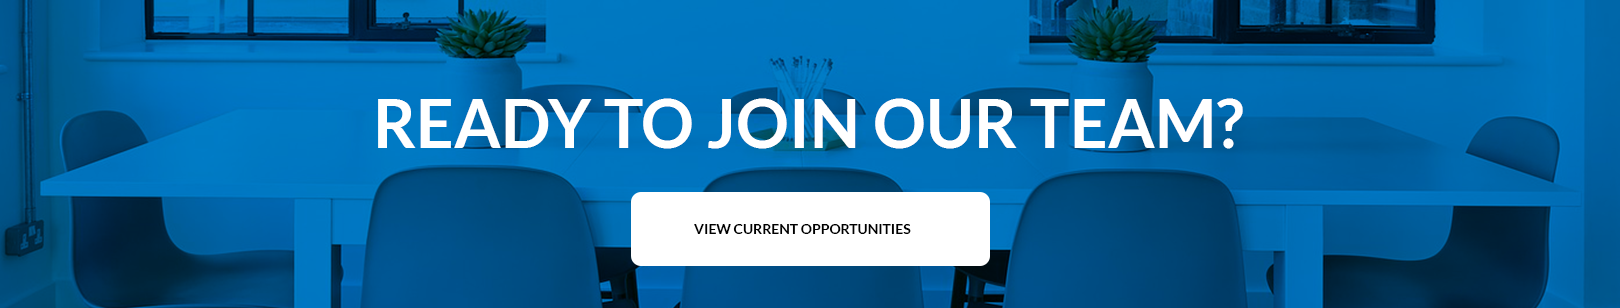 Ready to join our team? View current opportunities